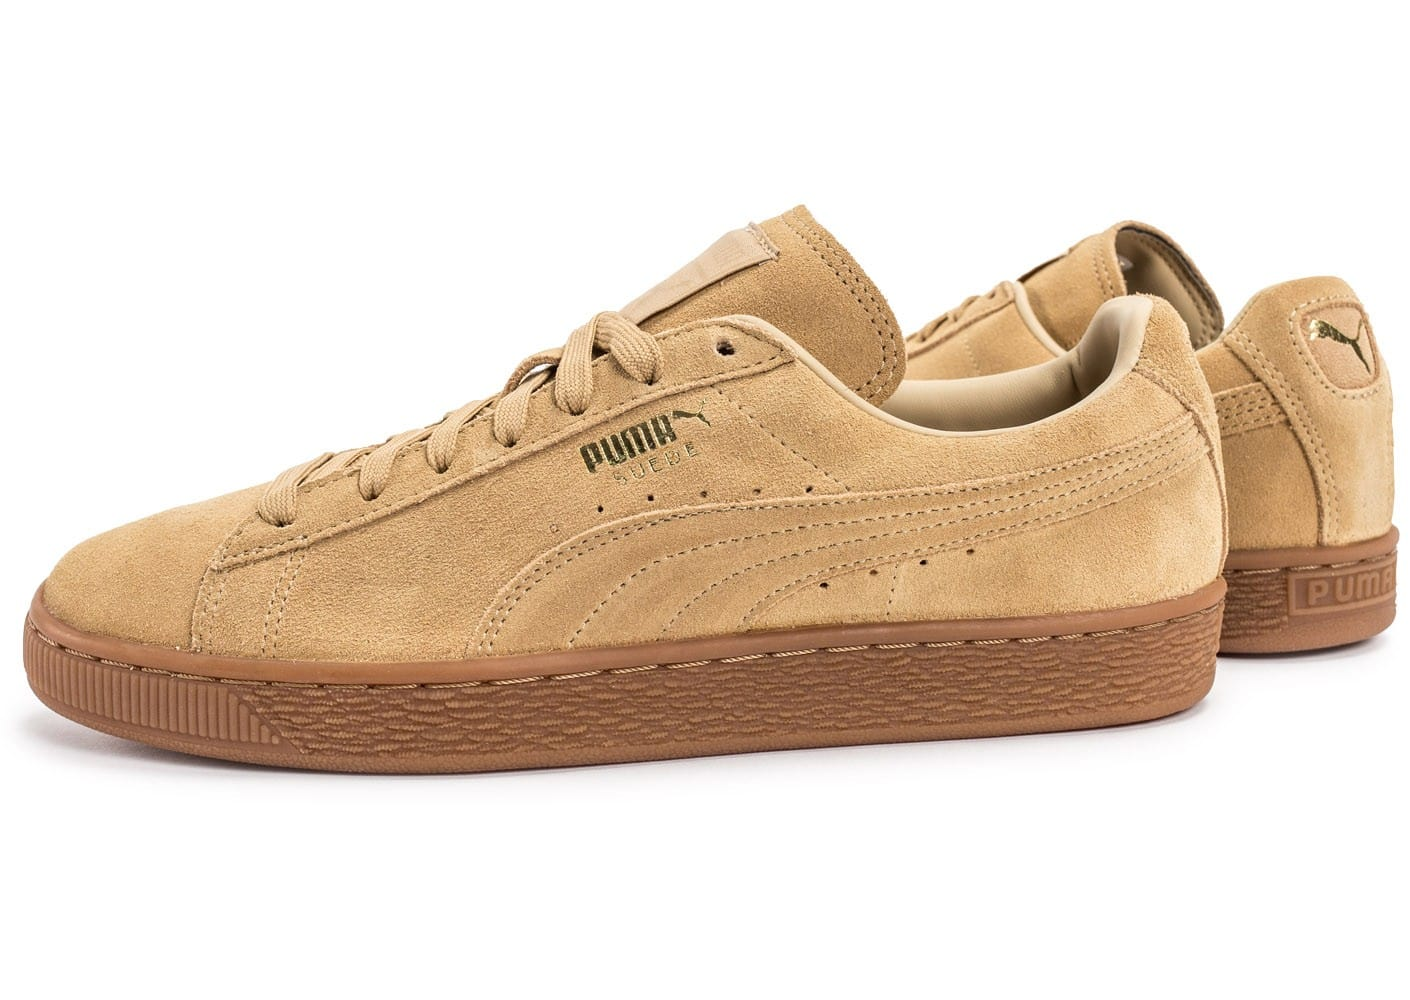 puma suede classic beige gum chaussures homme chausport. Black Bedroom Furniture Sets. Home Design Ideas